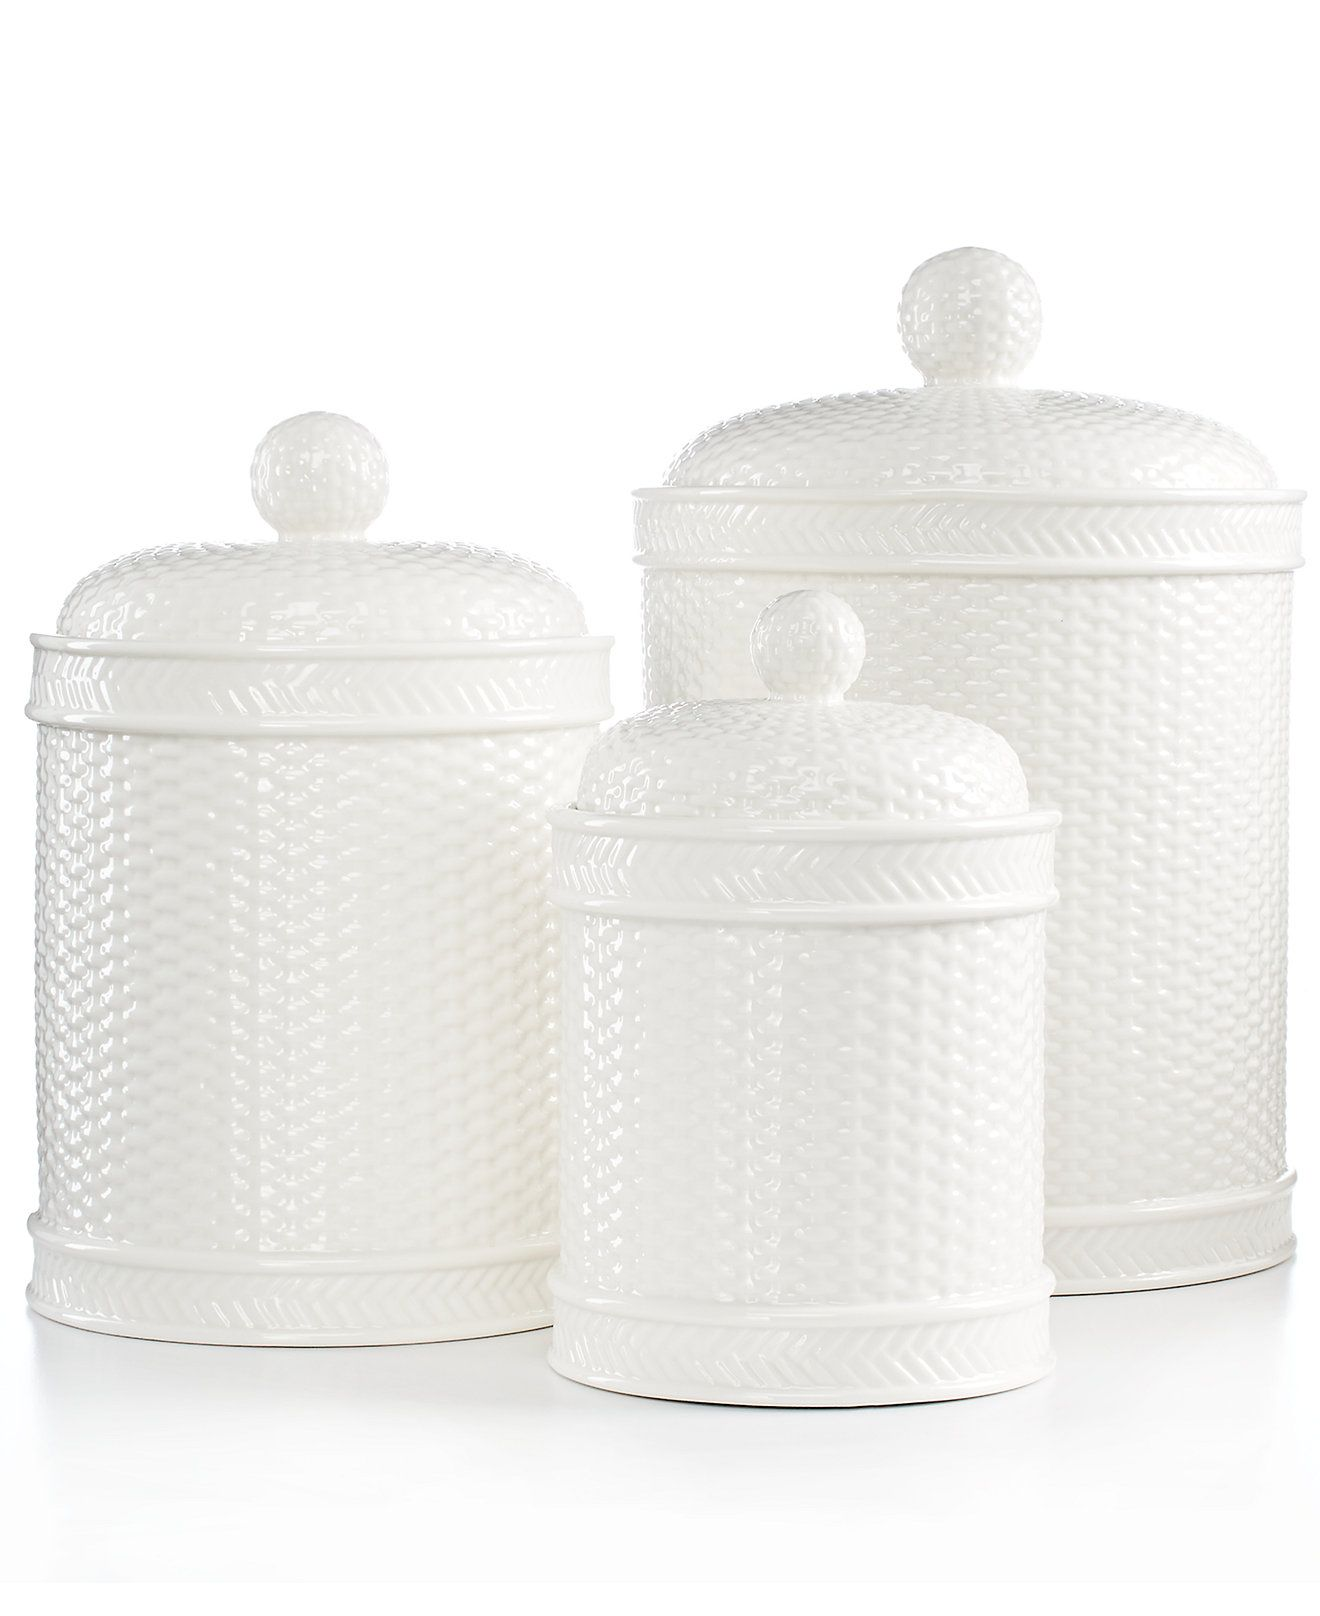 $360.00 ? who are they kidding?!??! Italian Ceramic Canister Set ...